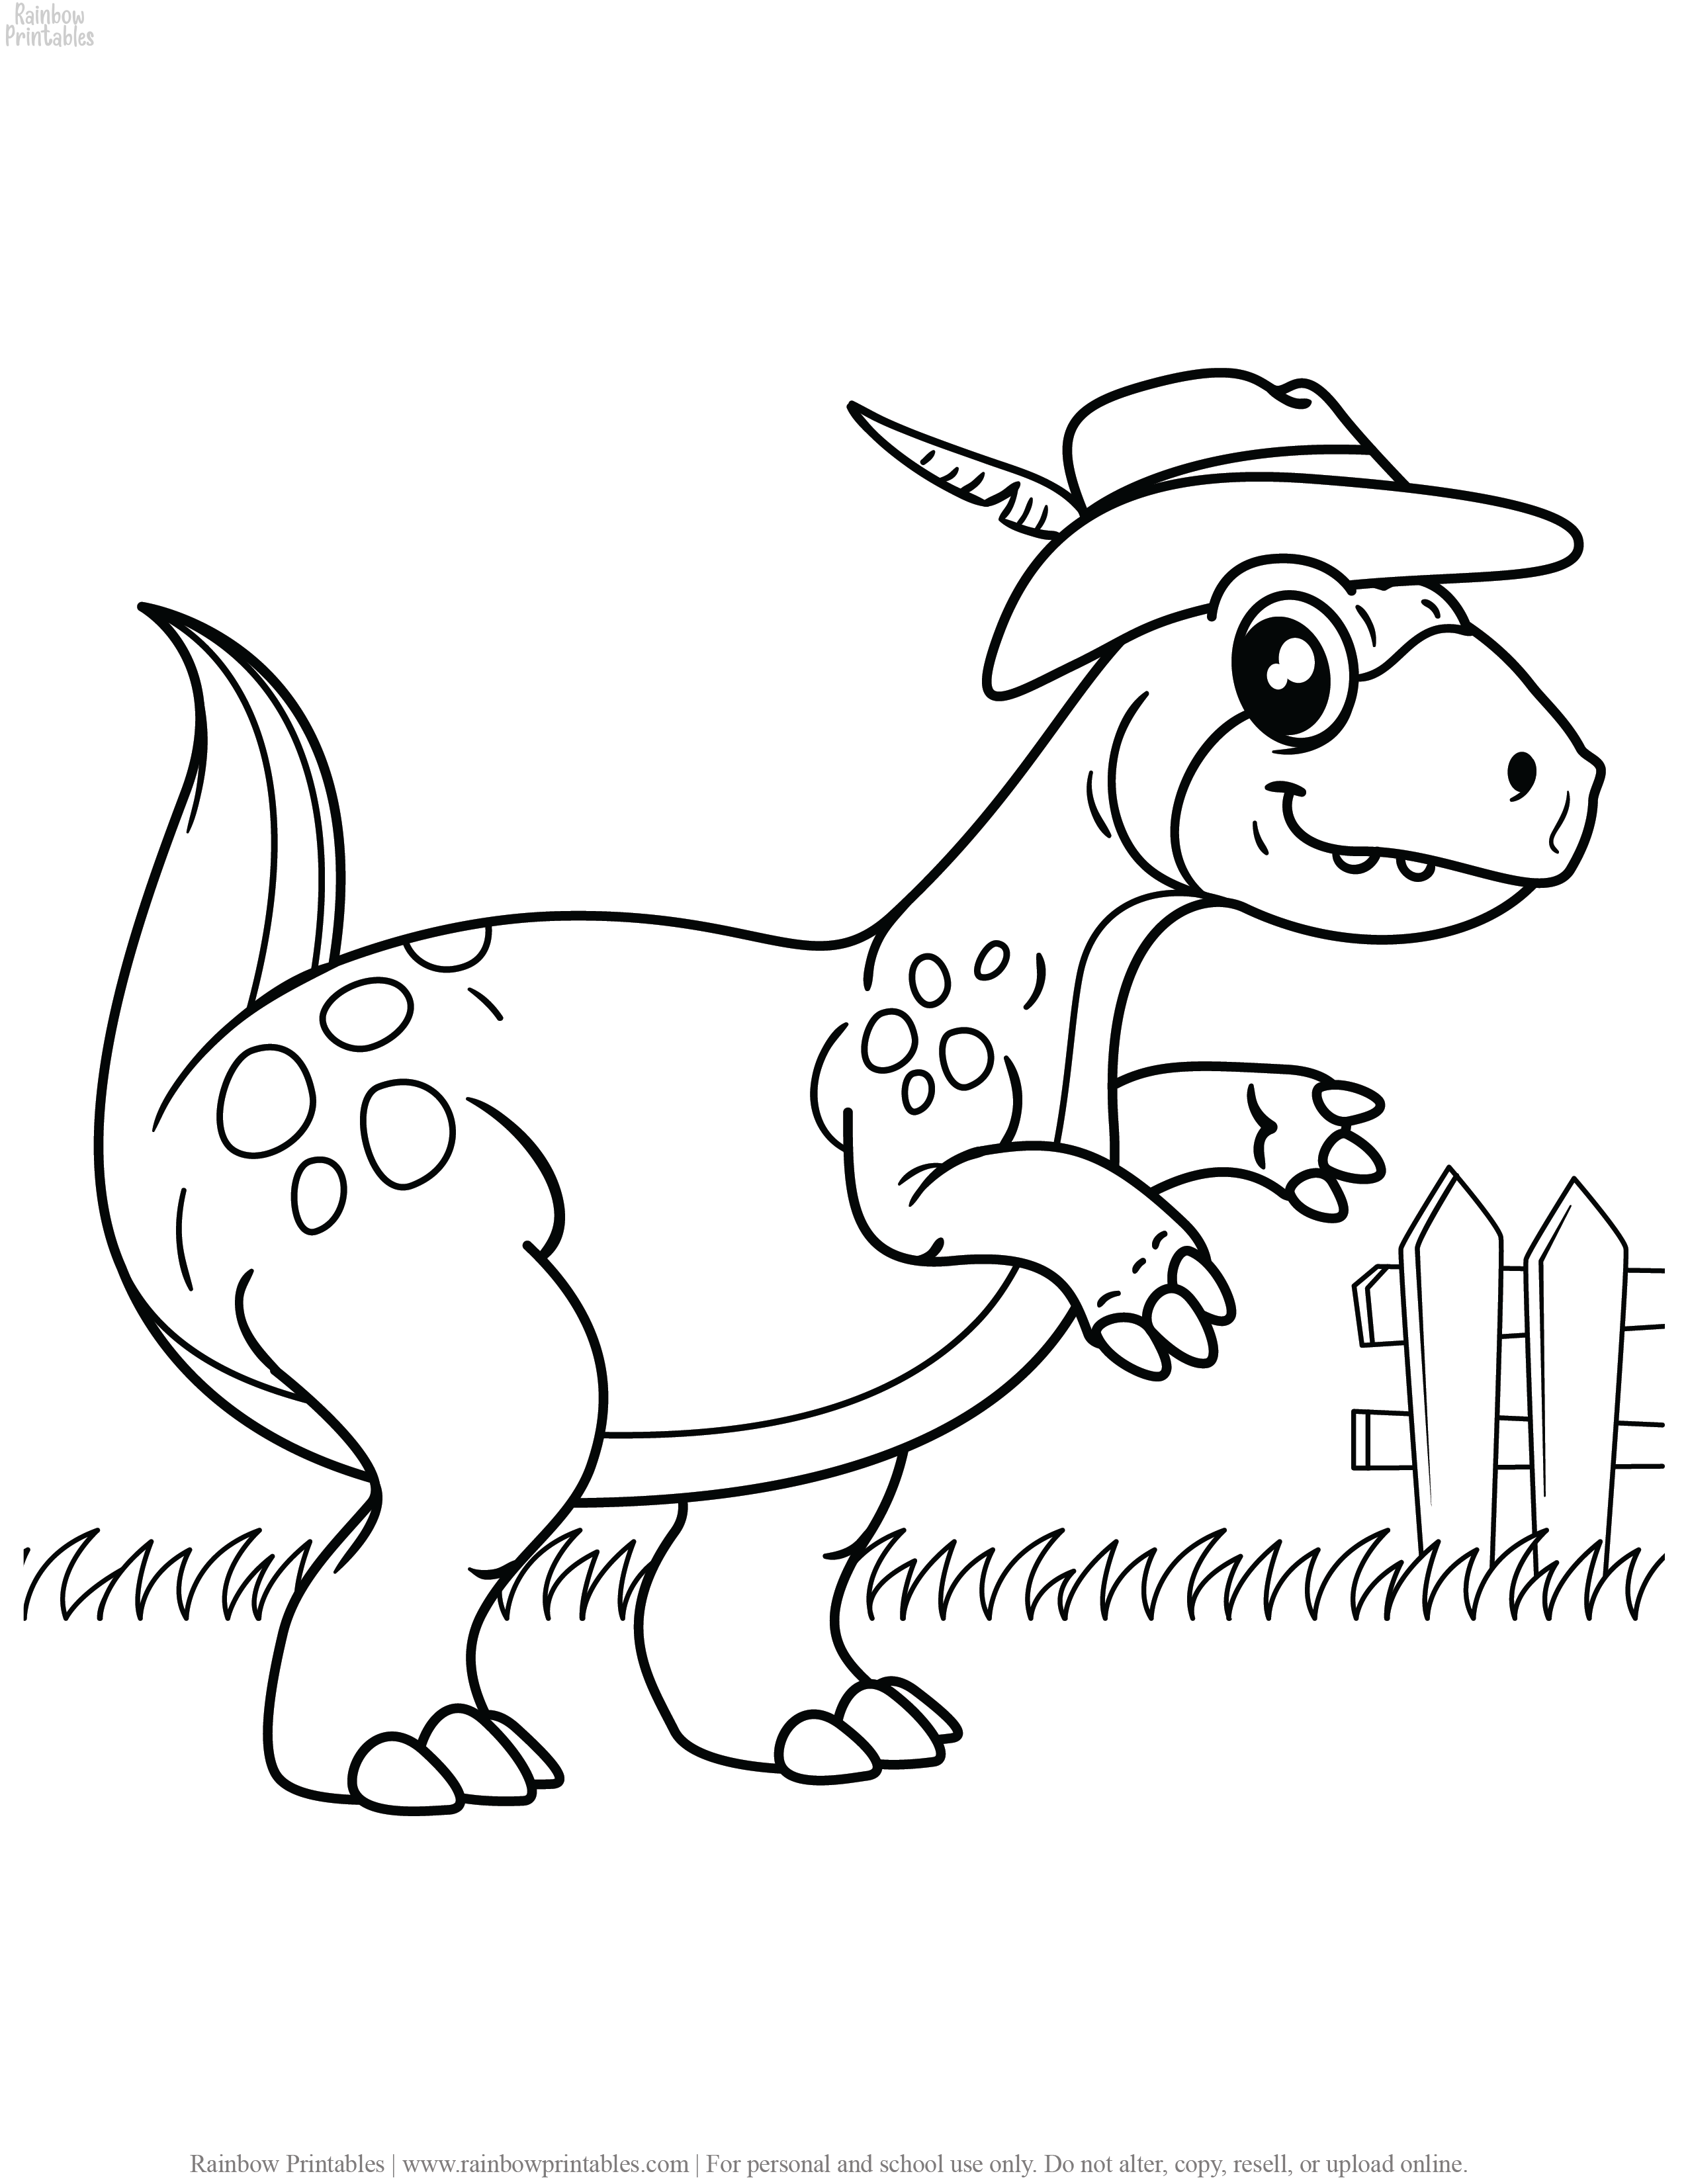 COLORING PAGES FOR BOYS FREE PRINTABLE CALMING COLOR ART ACTIVITY 36